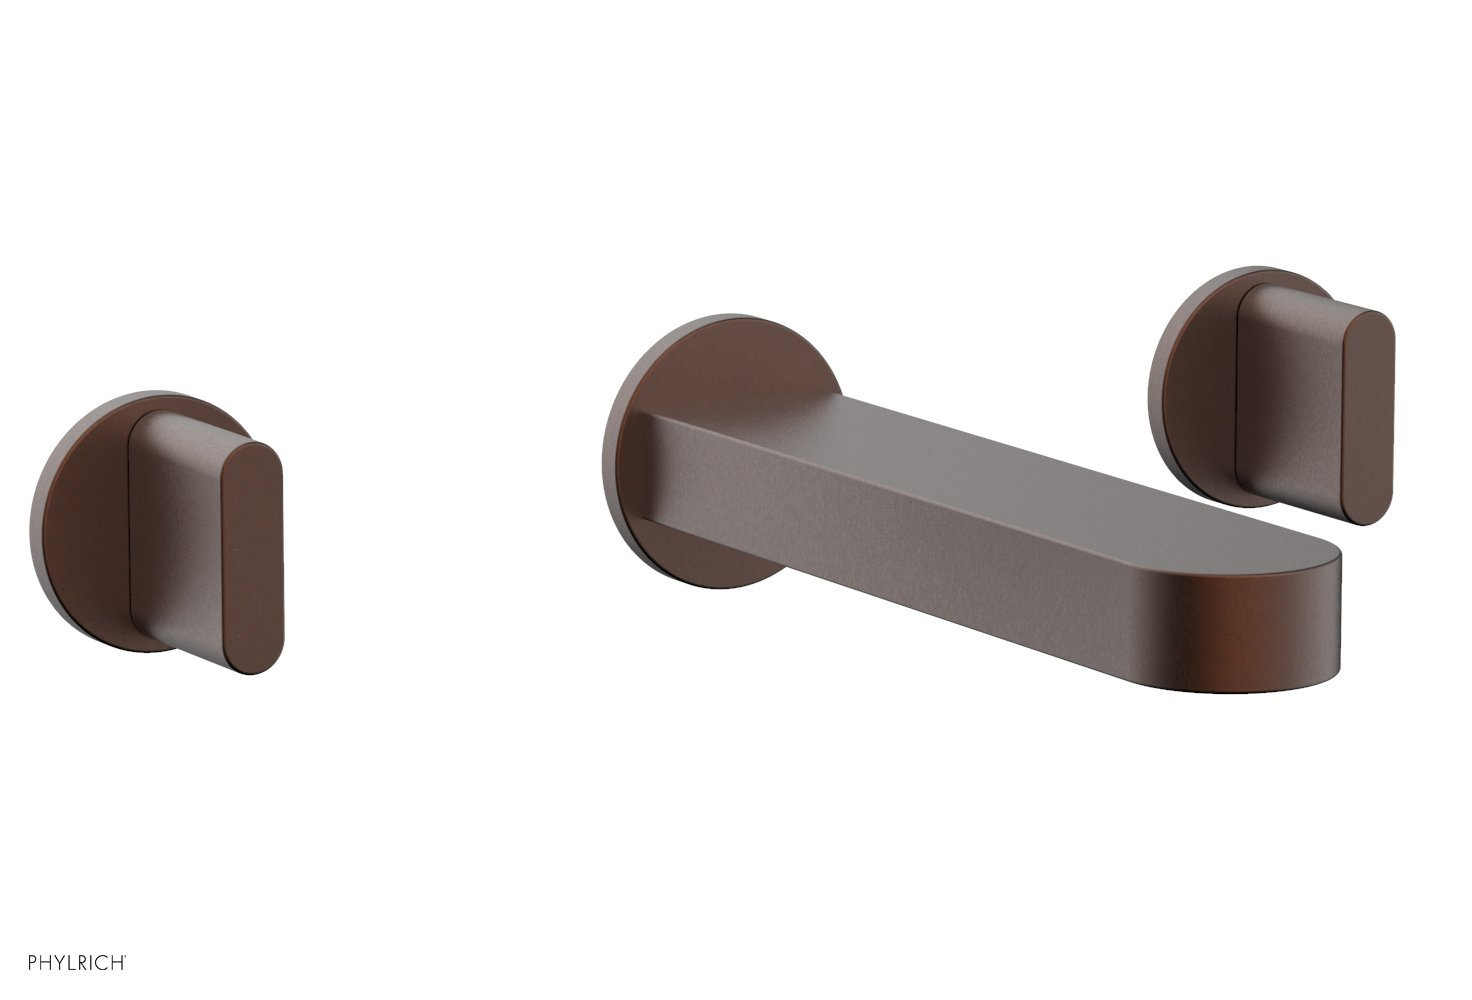 Phylrich 183-11-05W ROND Wall Lavatory Set - Blade Handles - Weathered Copper